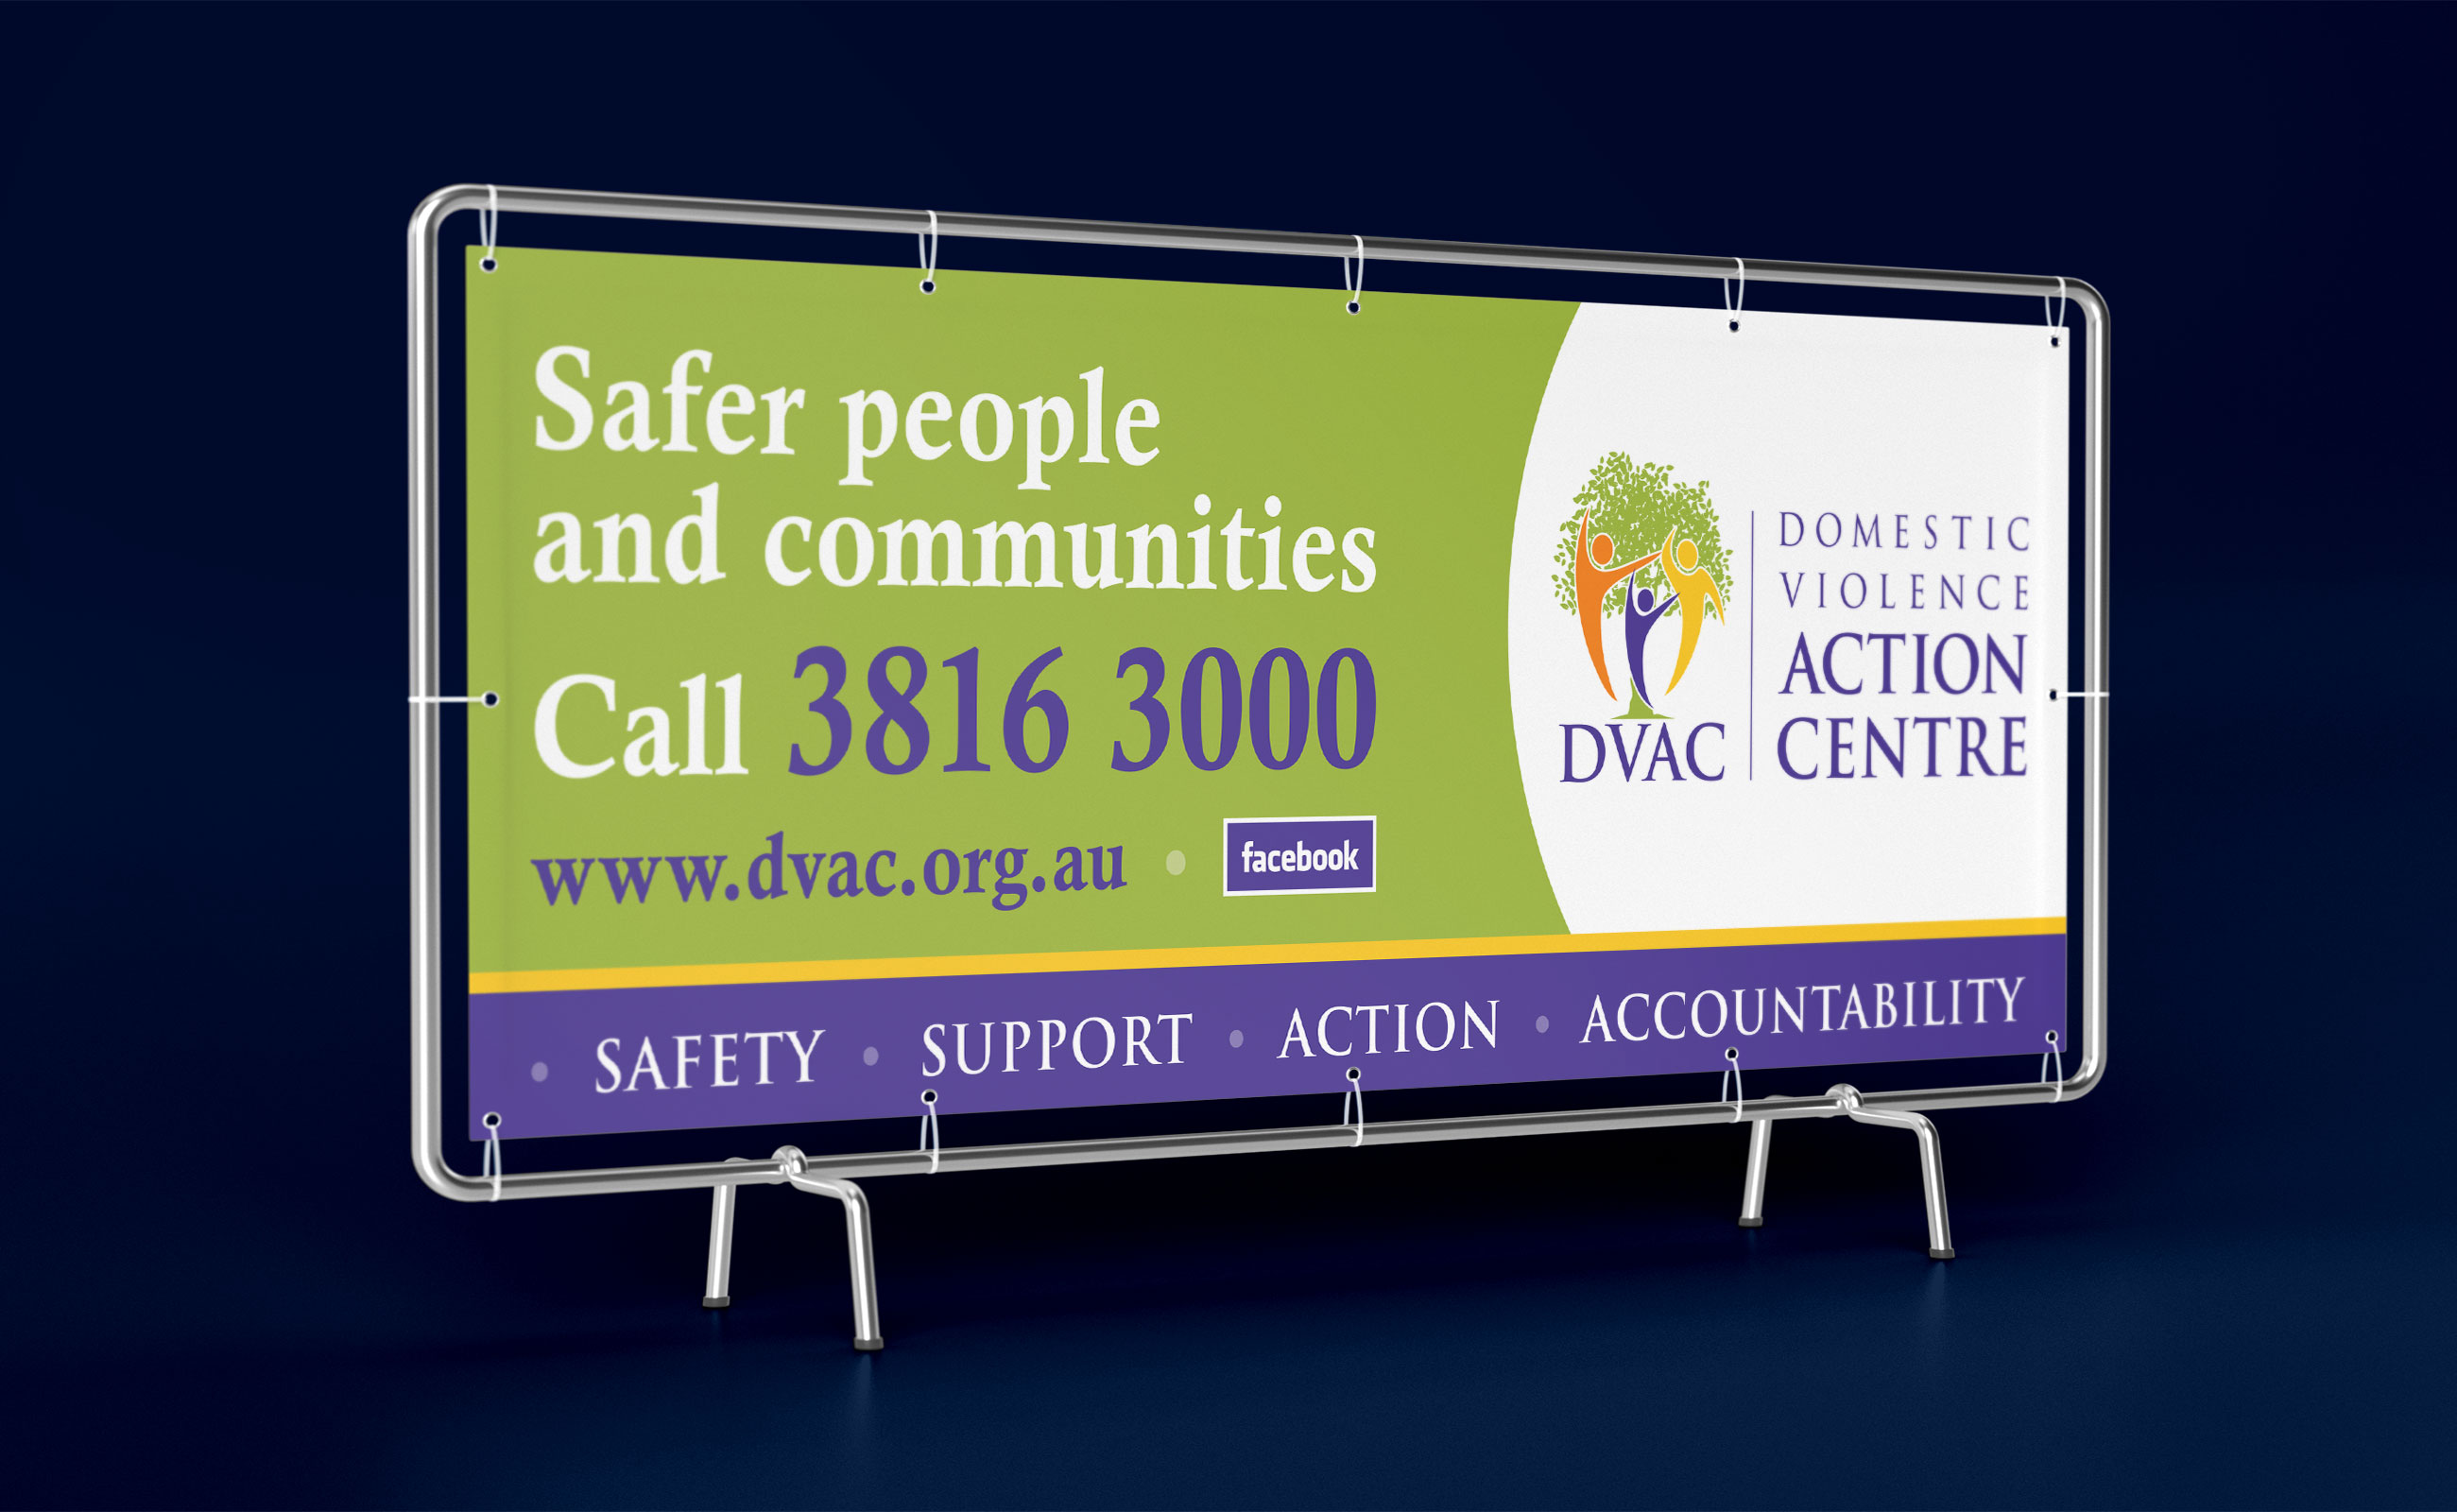 A vinyl banner for DVAC which says Safer people and communities - call 3816 3000